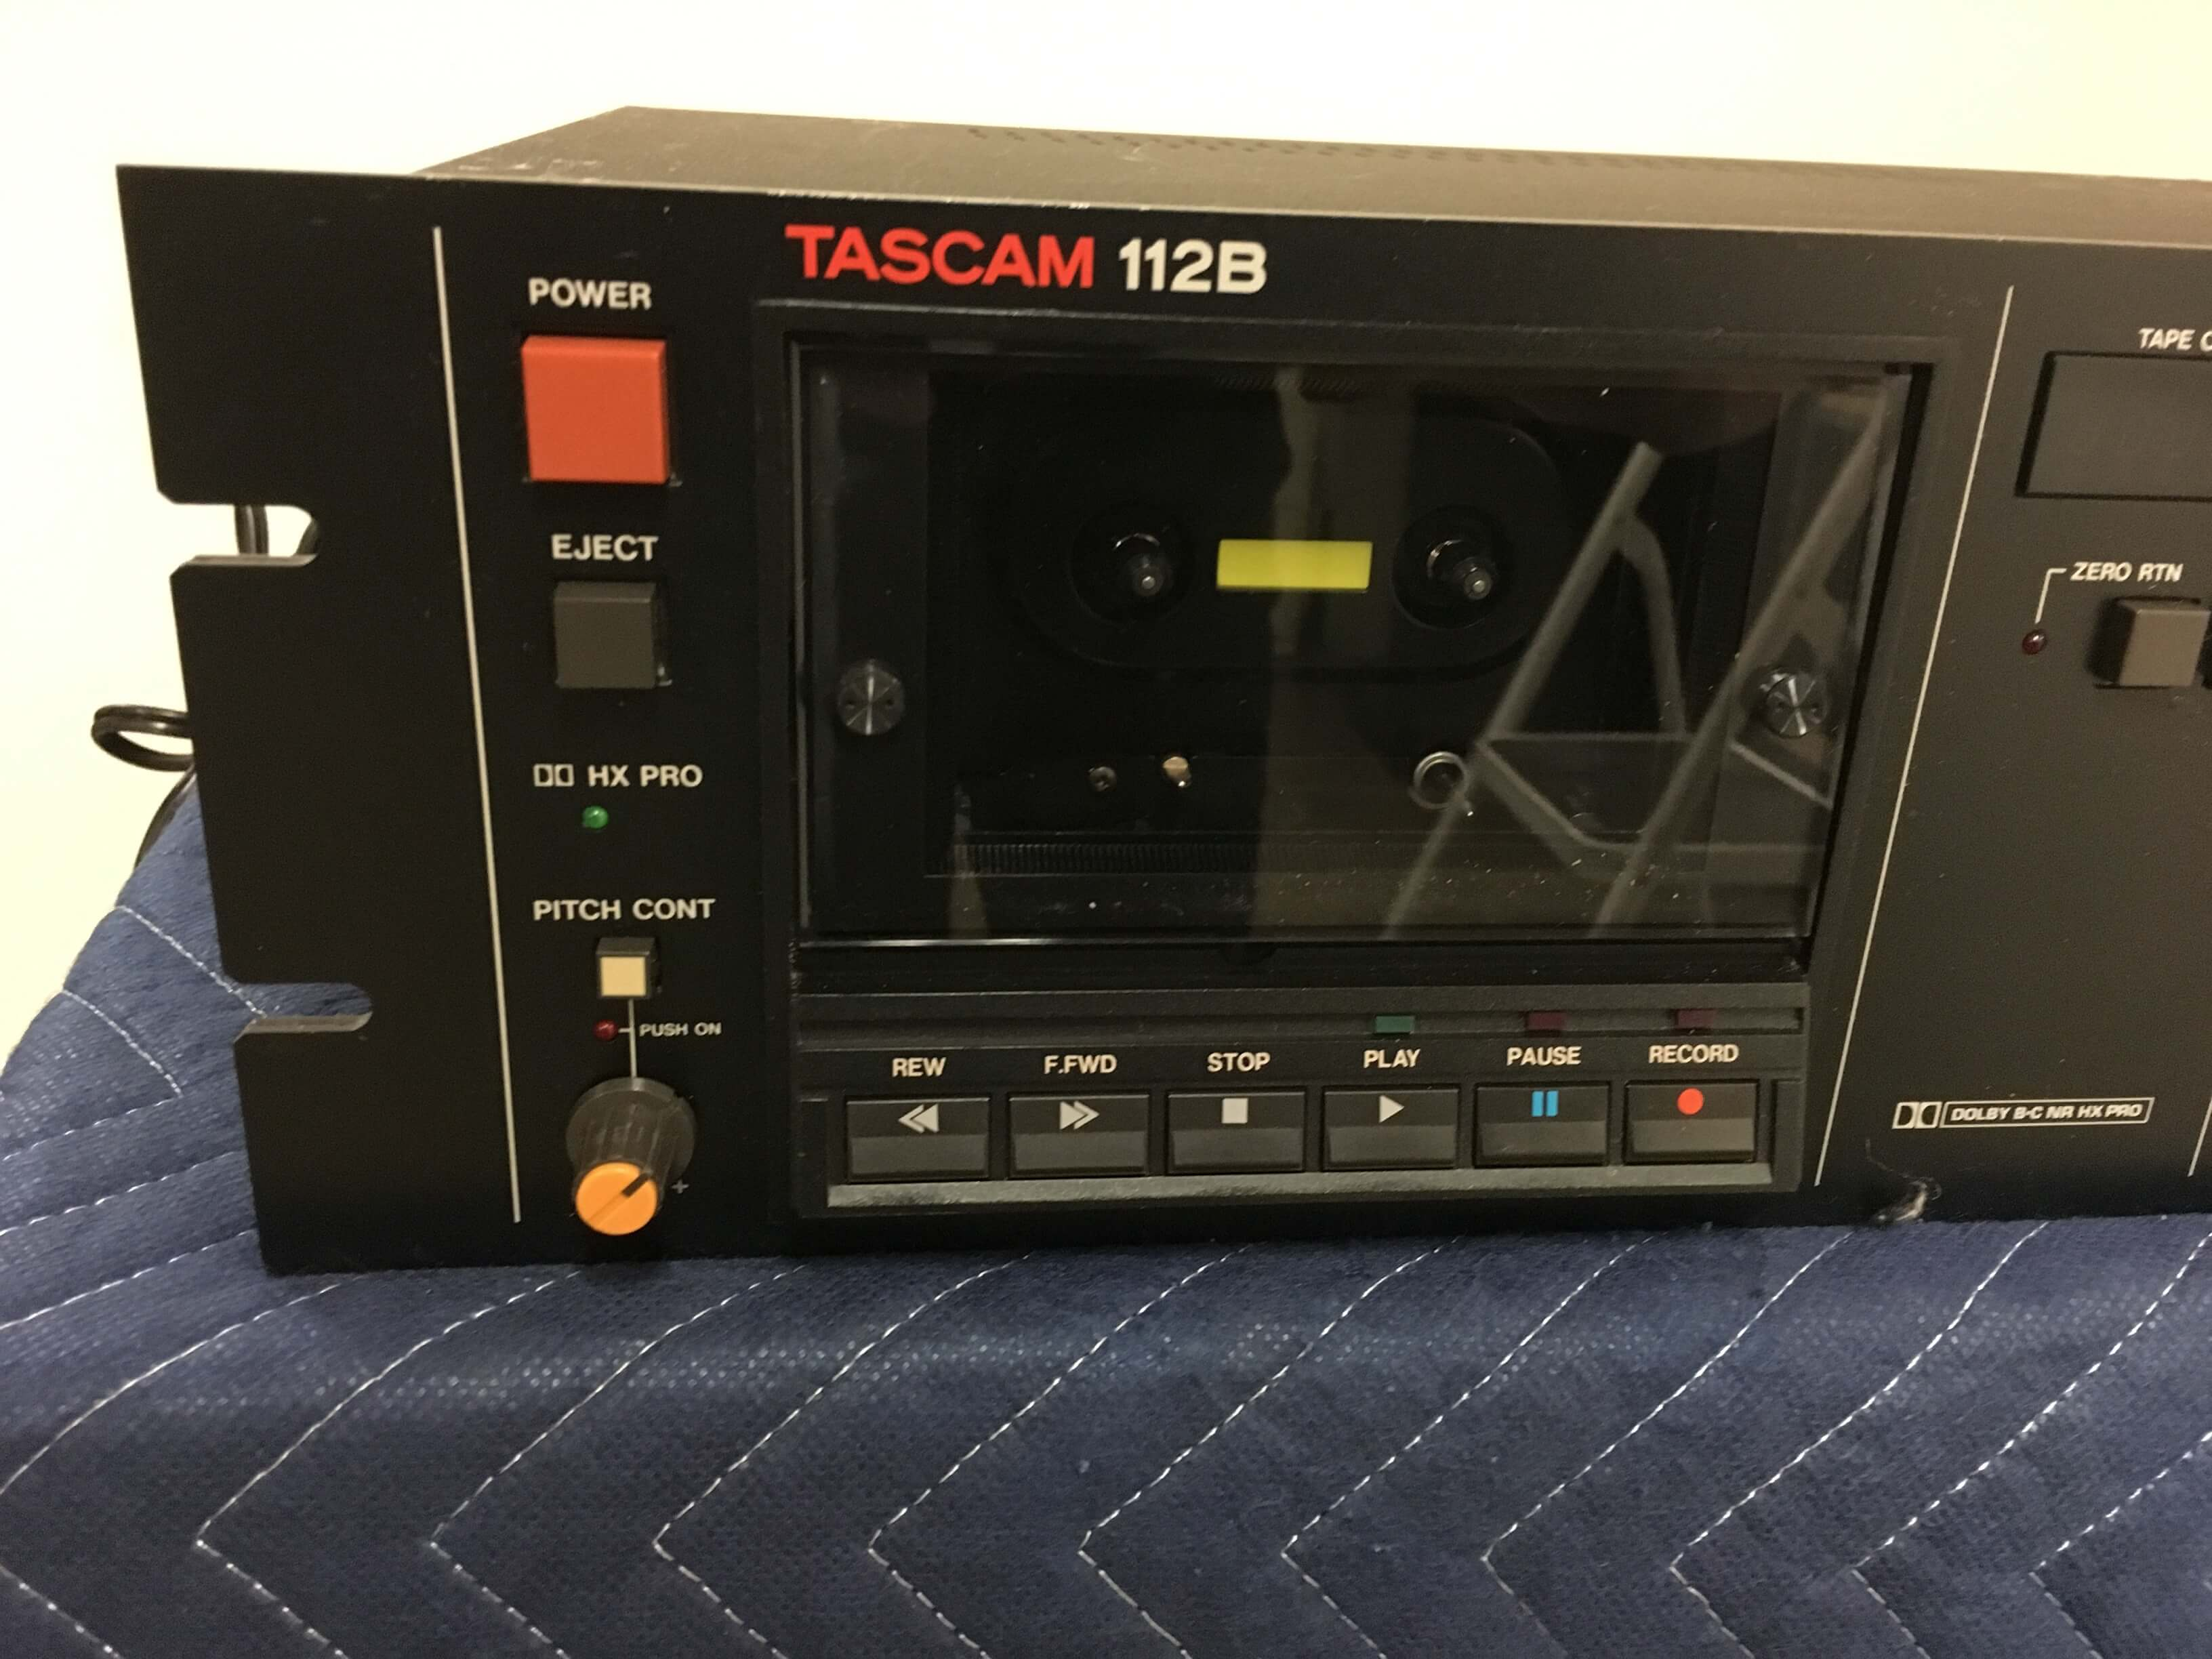 Tascam 112B professional tape deck